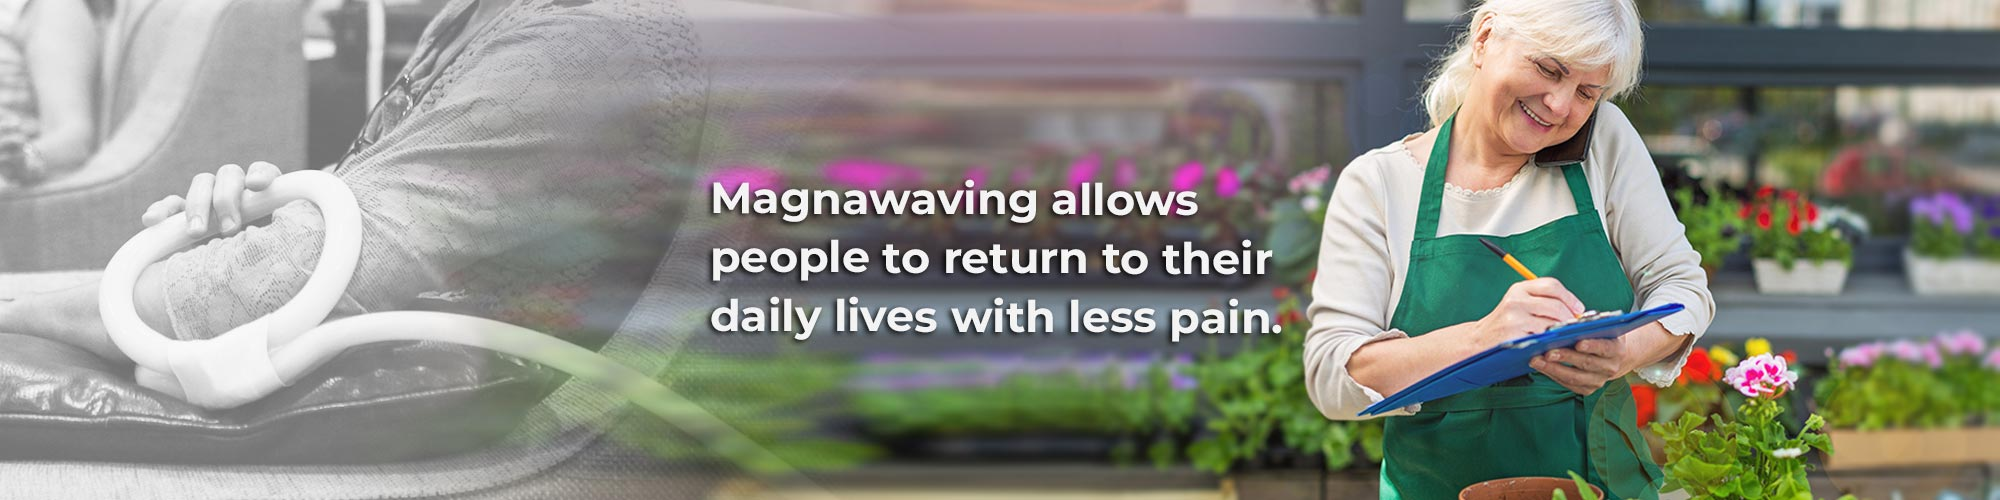 Magnawaving allows people to return to their daily lives with less pain.